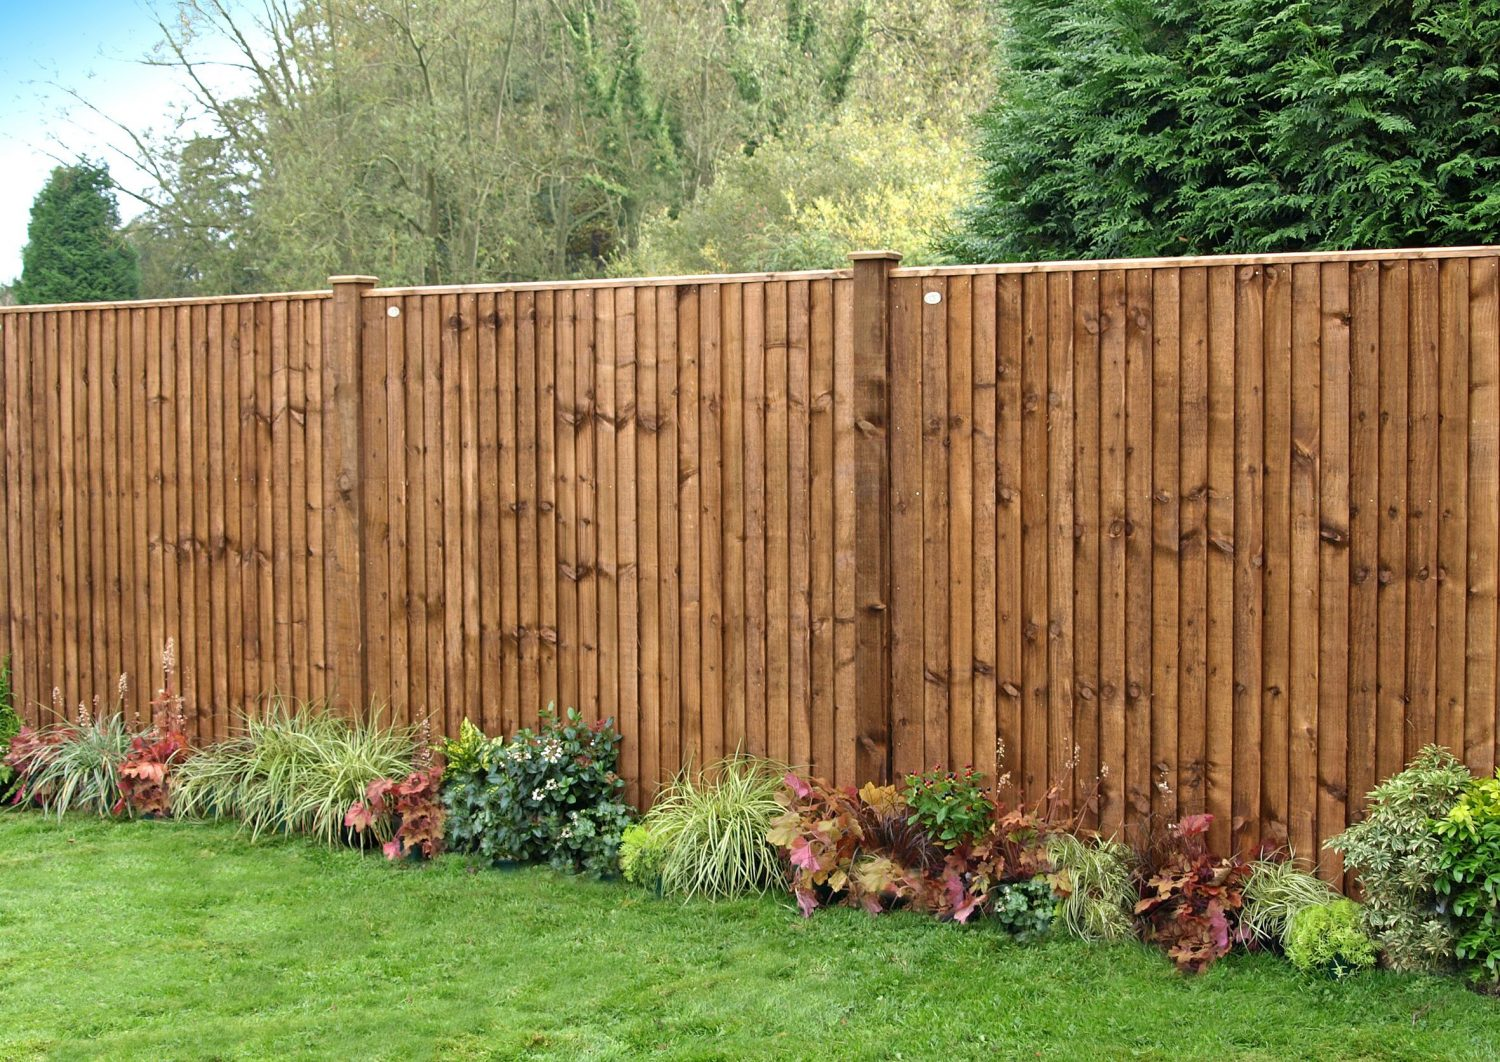 A photo of heavy duty closeboard fence panels in a garden